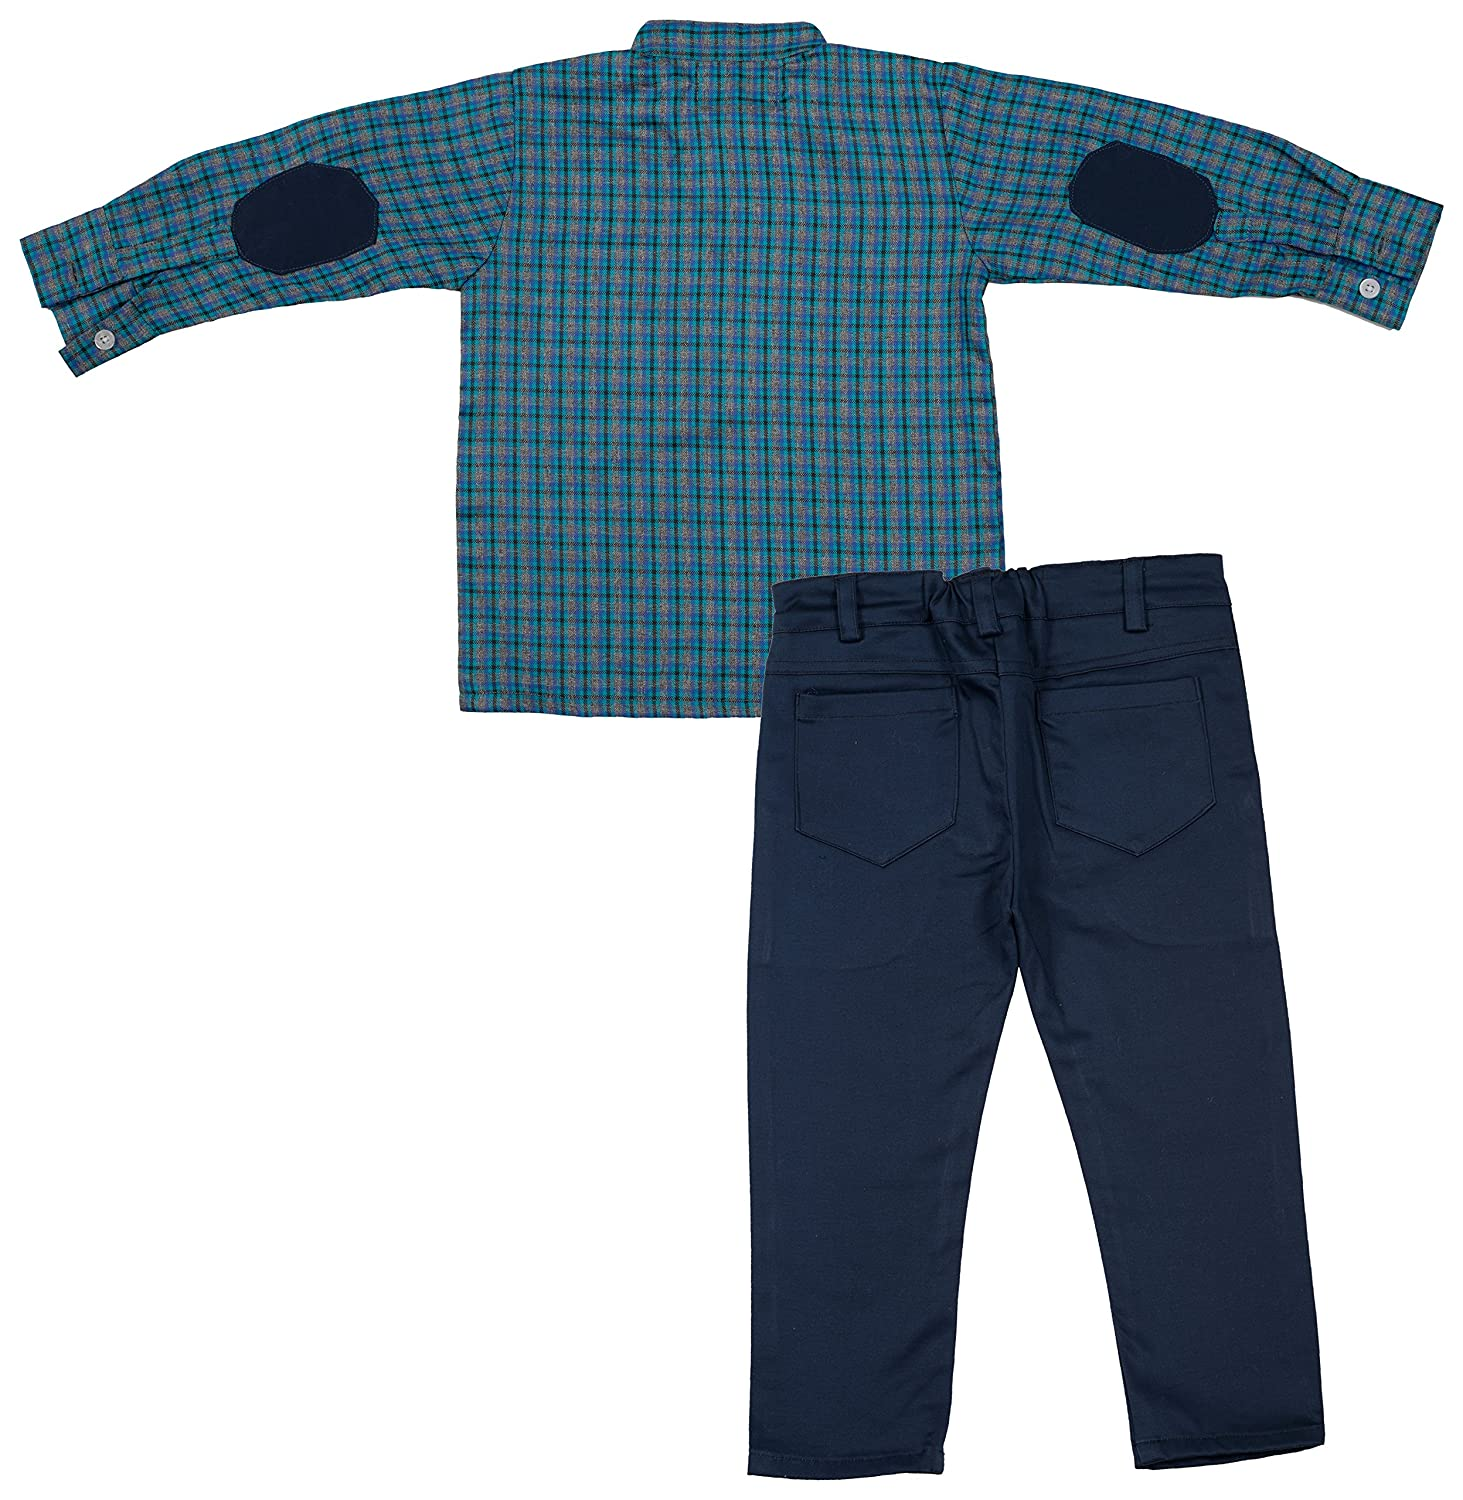 Buy Amelia S Girls Cotton Spandex Shirt And Trouser Set Aml 01